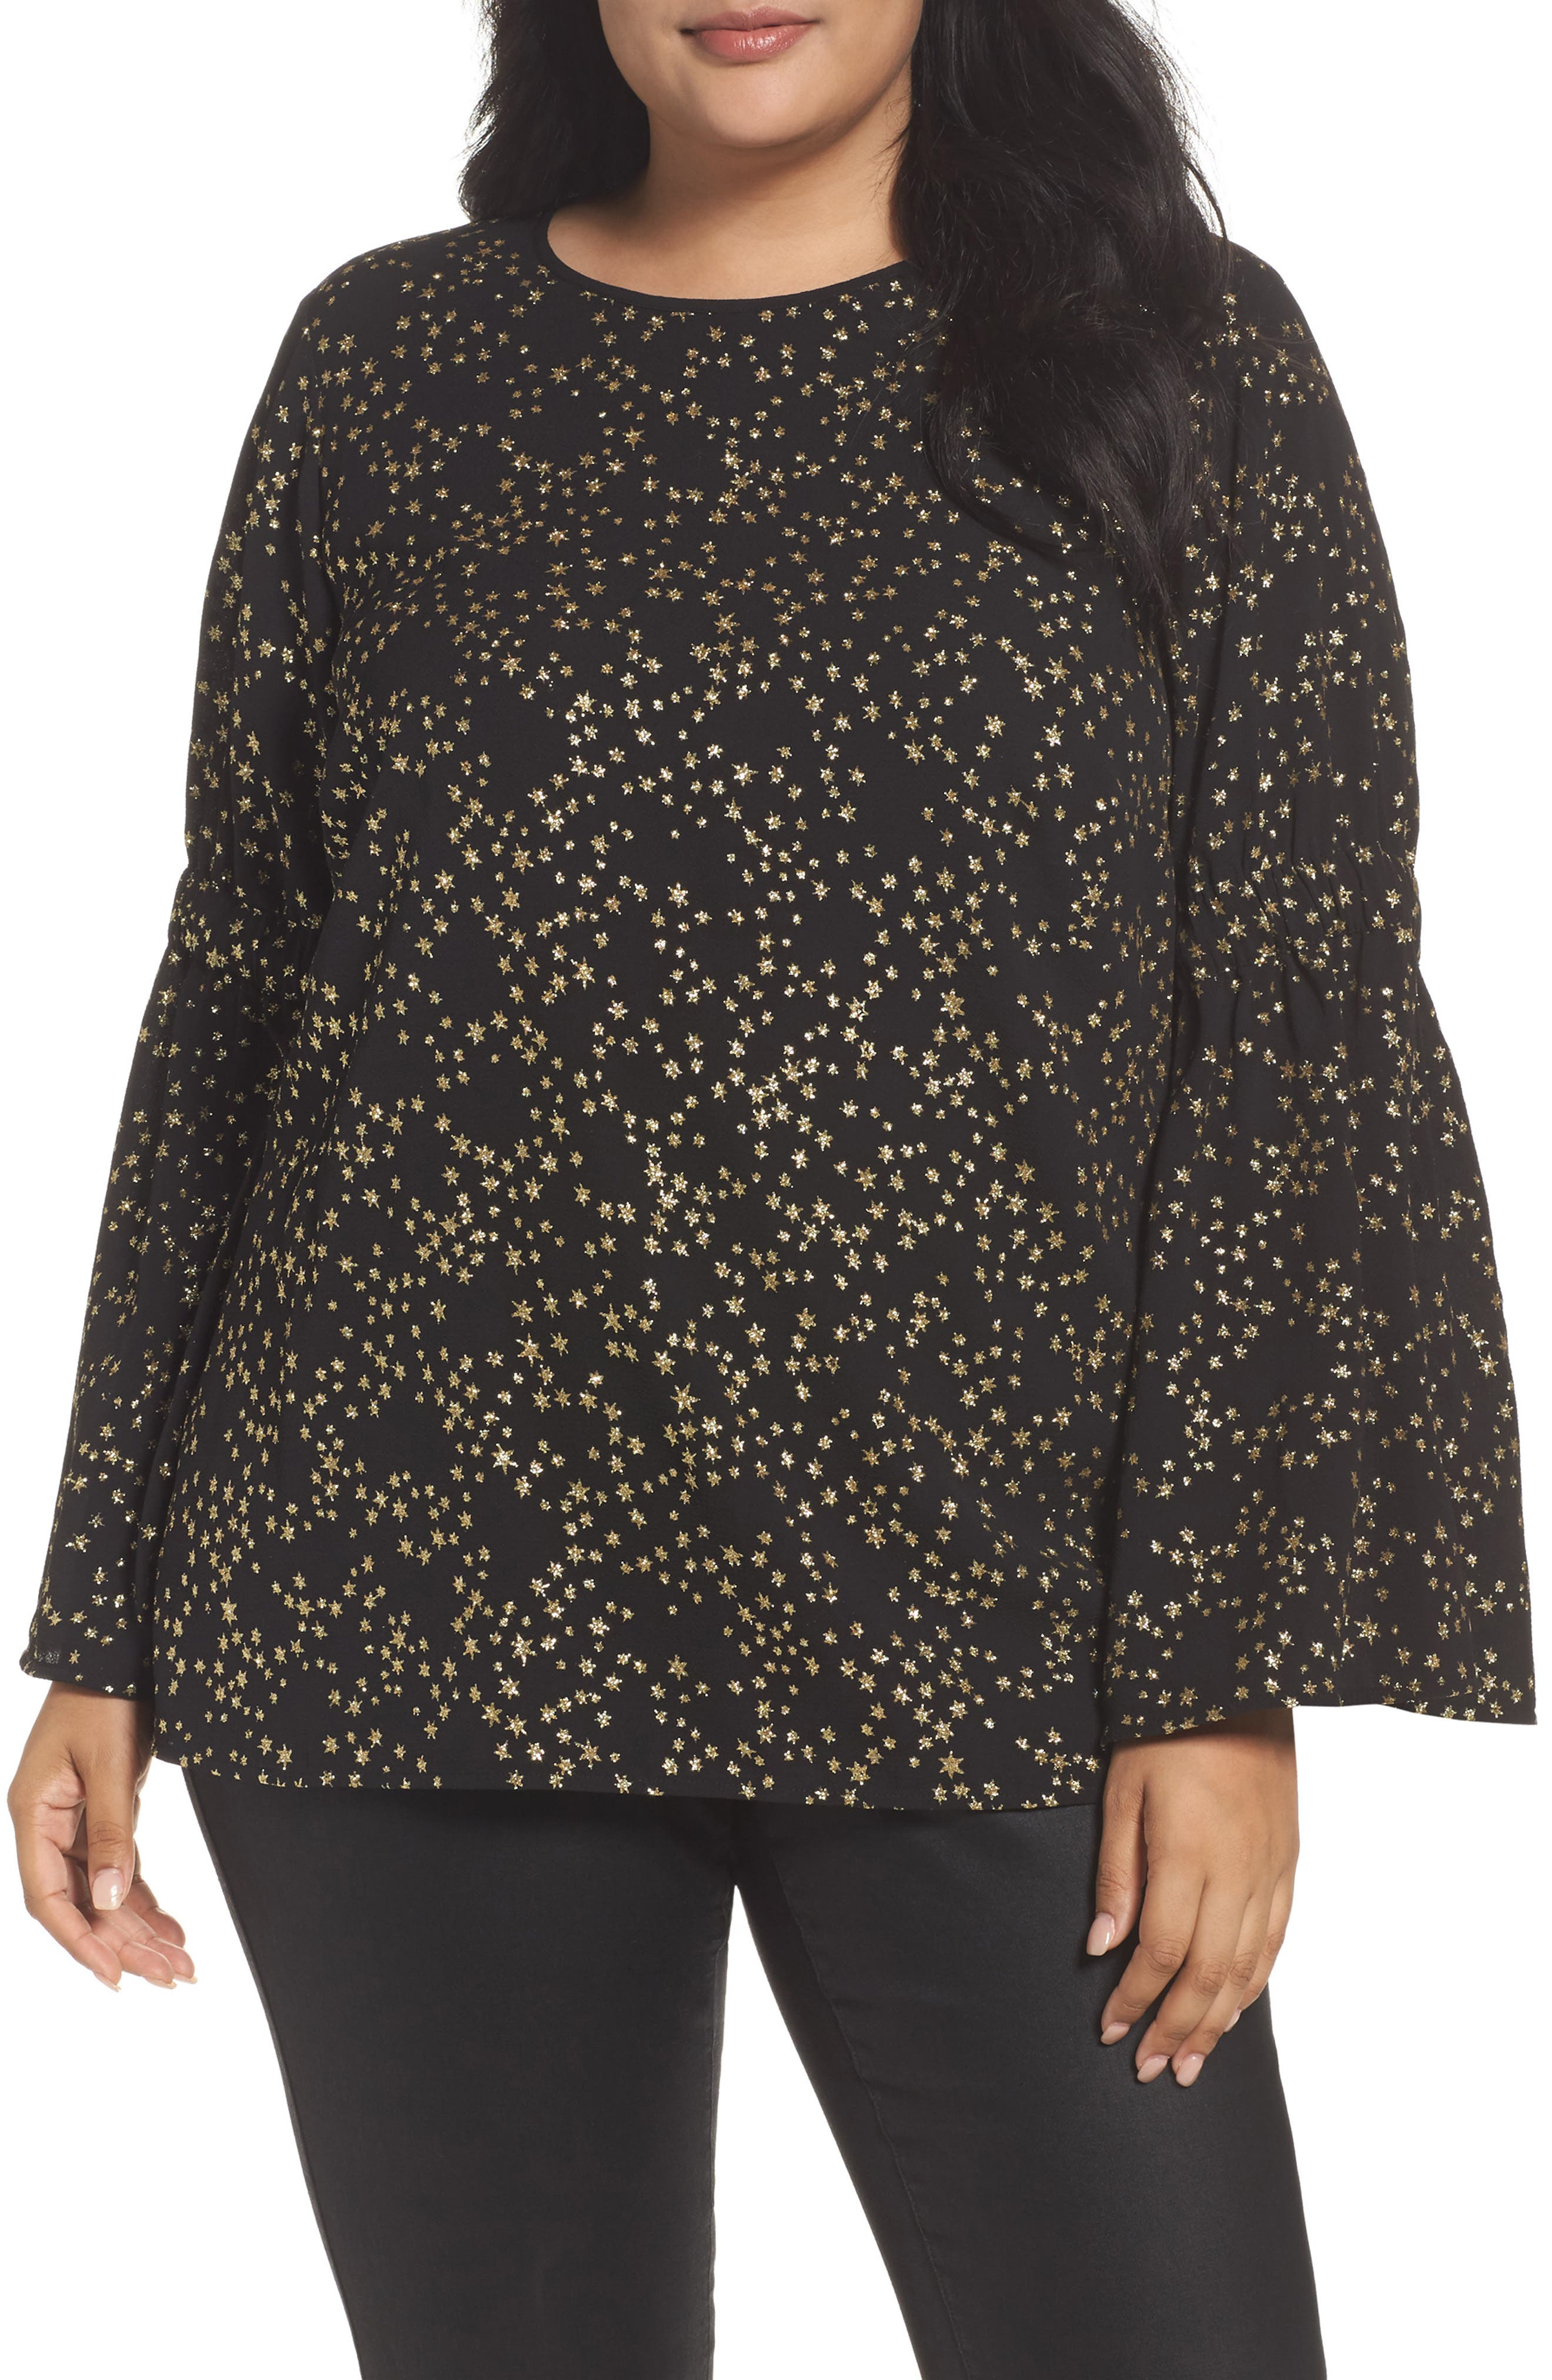 Alternate Image 1 Selected - MICHAEL Michael Kors Shooting Star Bell Sleeve Top (Plus Size)